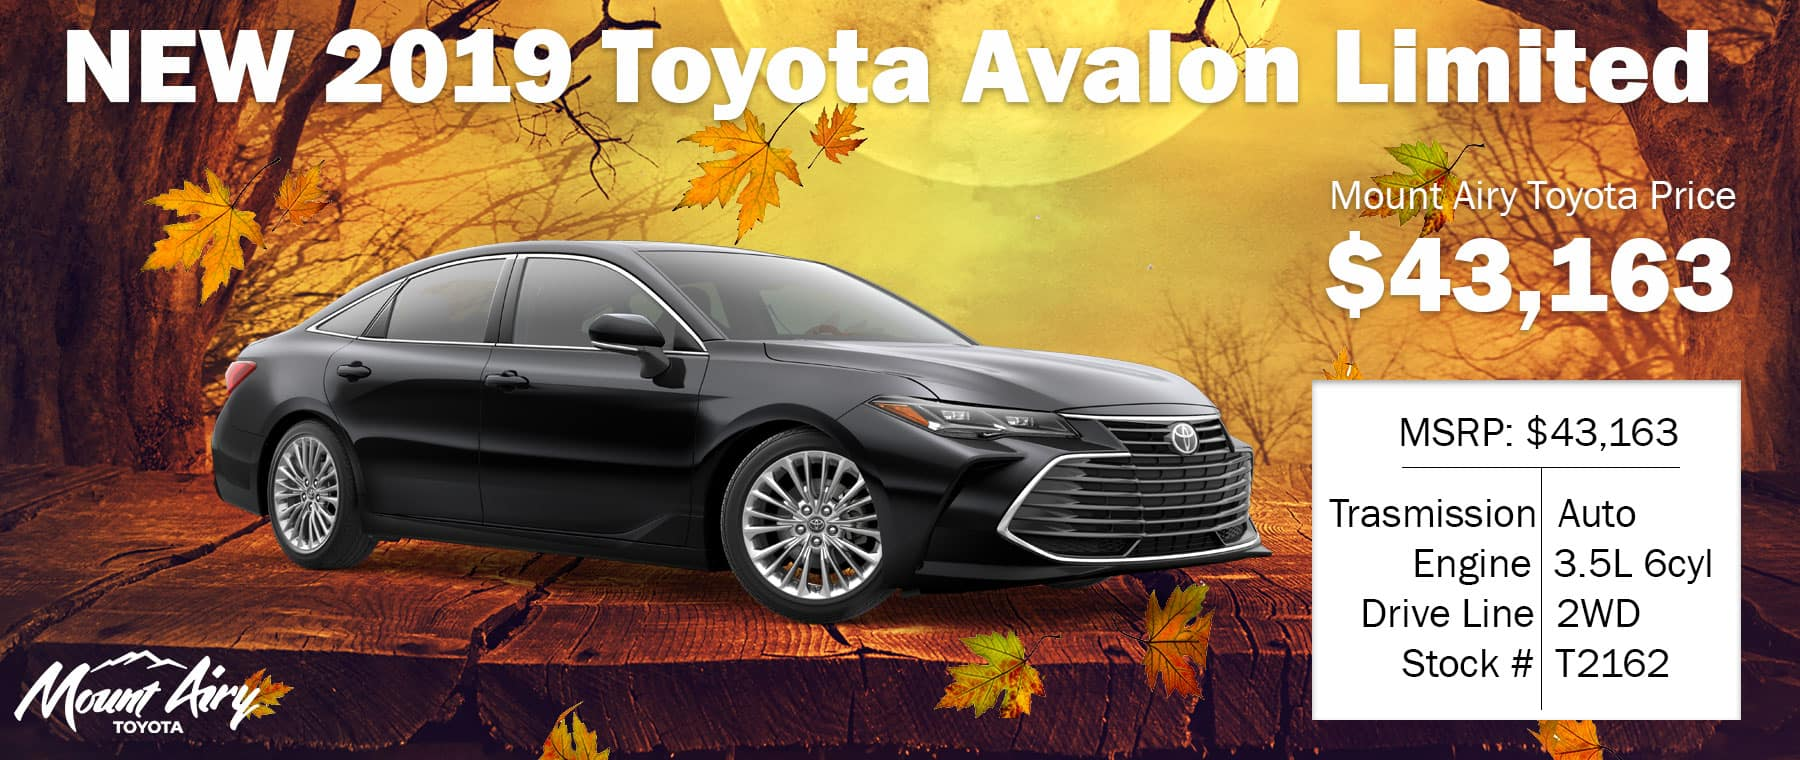 Mount Airy Toyota: Toyota Dealer Serving Galax